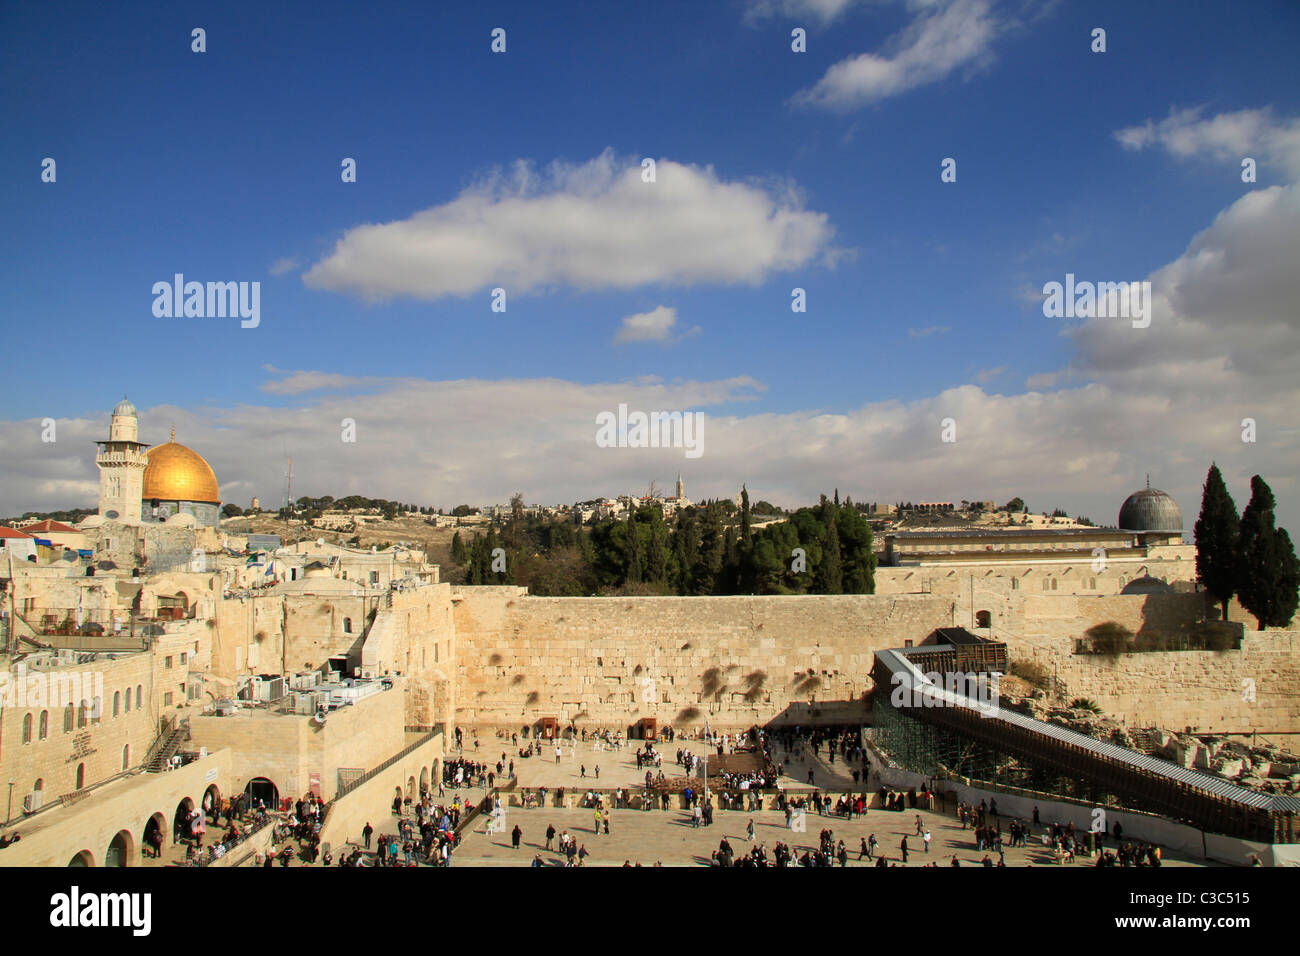 Israel, Jerusalem Old City, a view of Temple Mount from the Jewish Quarter - Stock Image